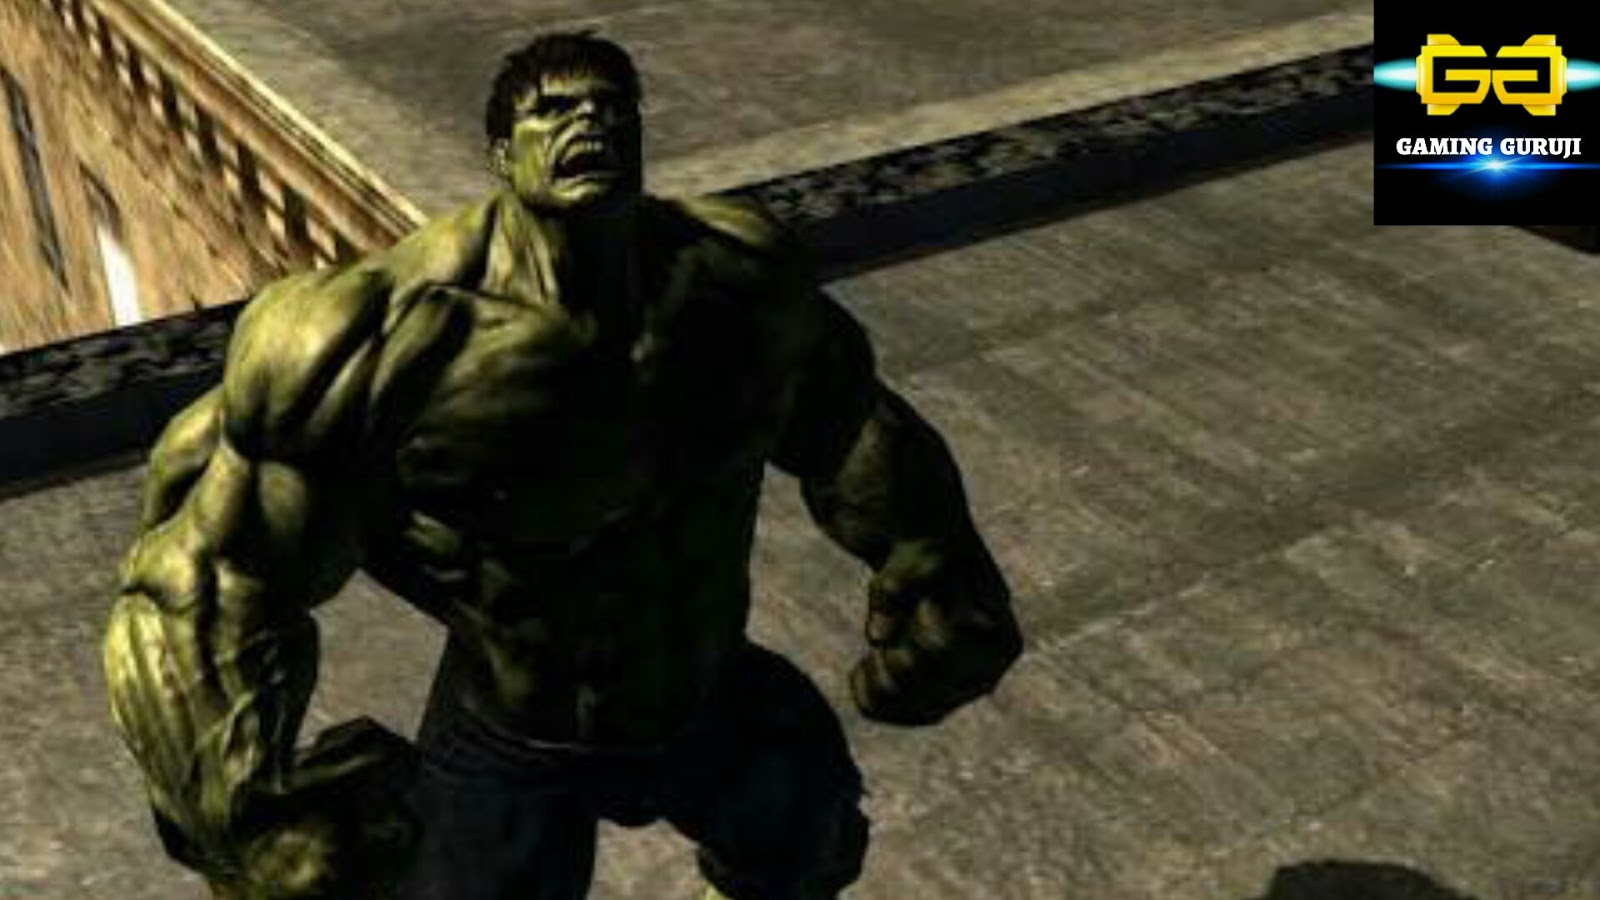 The incredible hulk 2 png icons free download, iconseeker. Com.